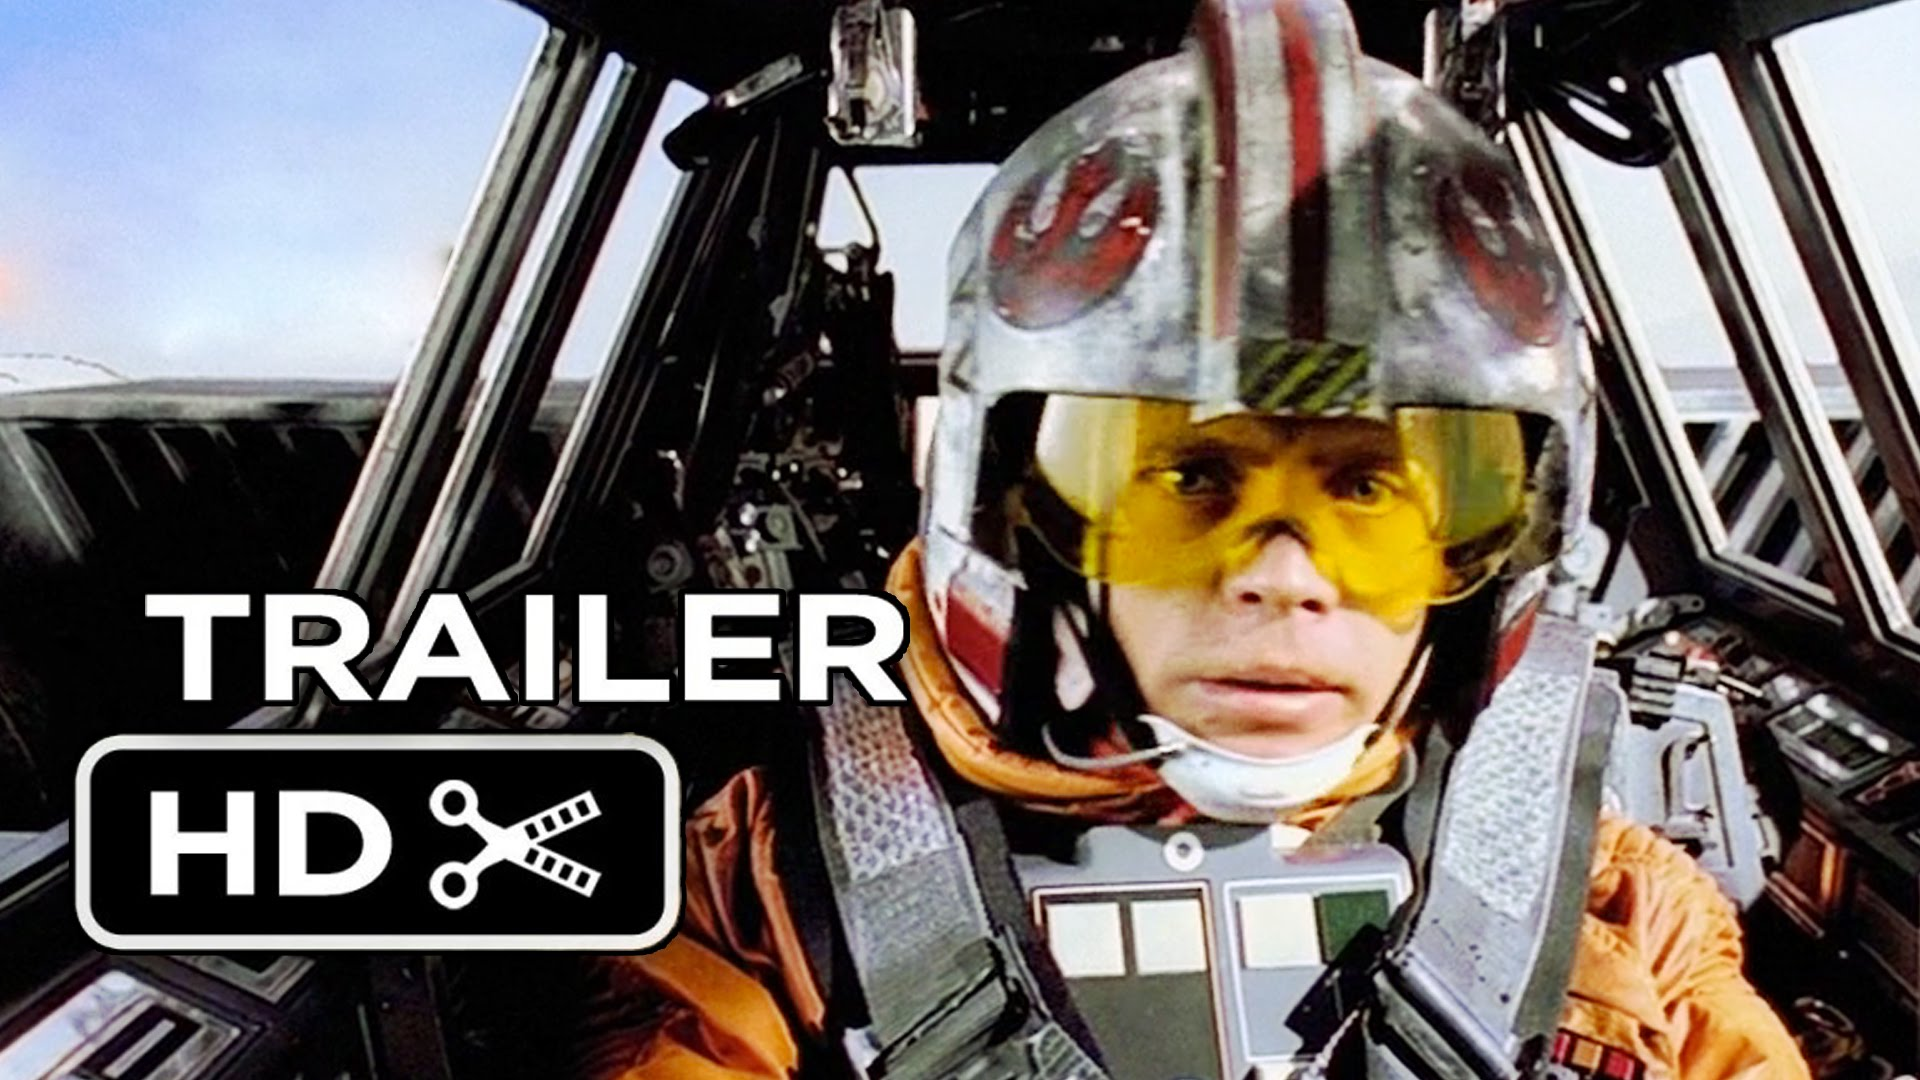 A Shot-for-Shot Remake of the Star Wars: The Force Awakens Trailer Using Only Original Trilogy Footage